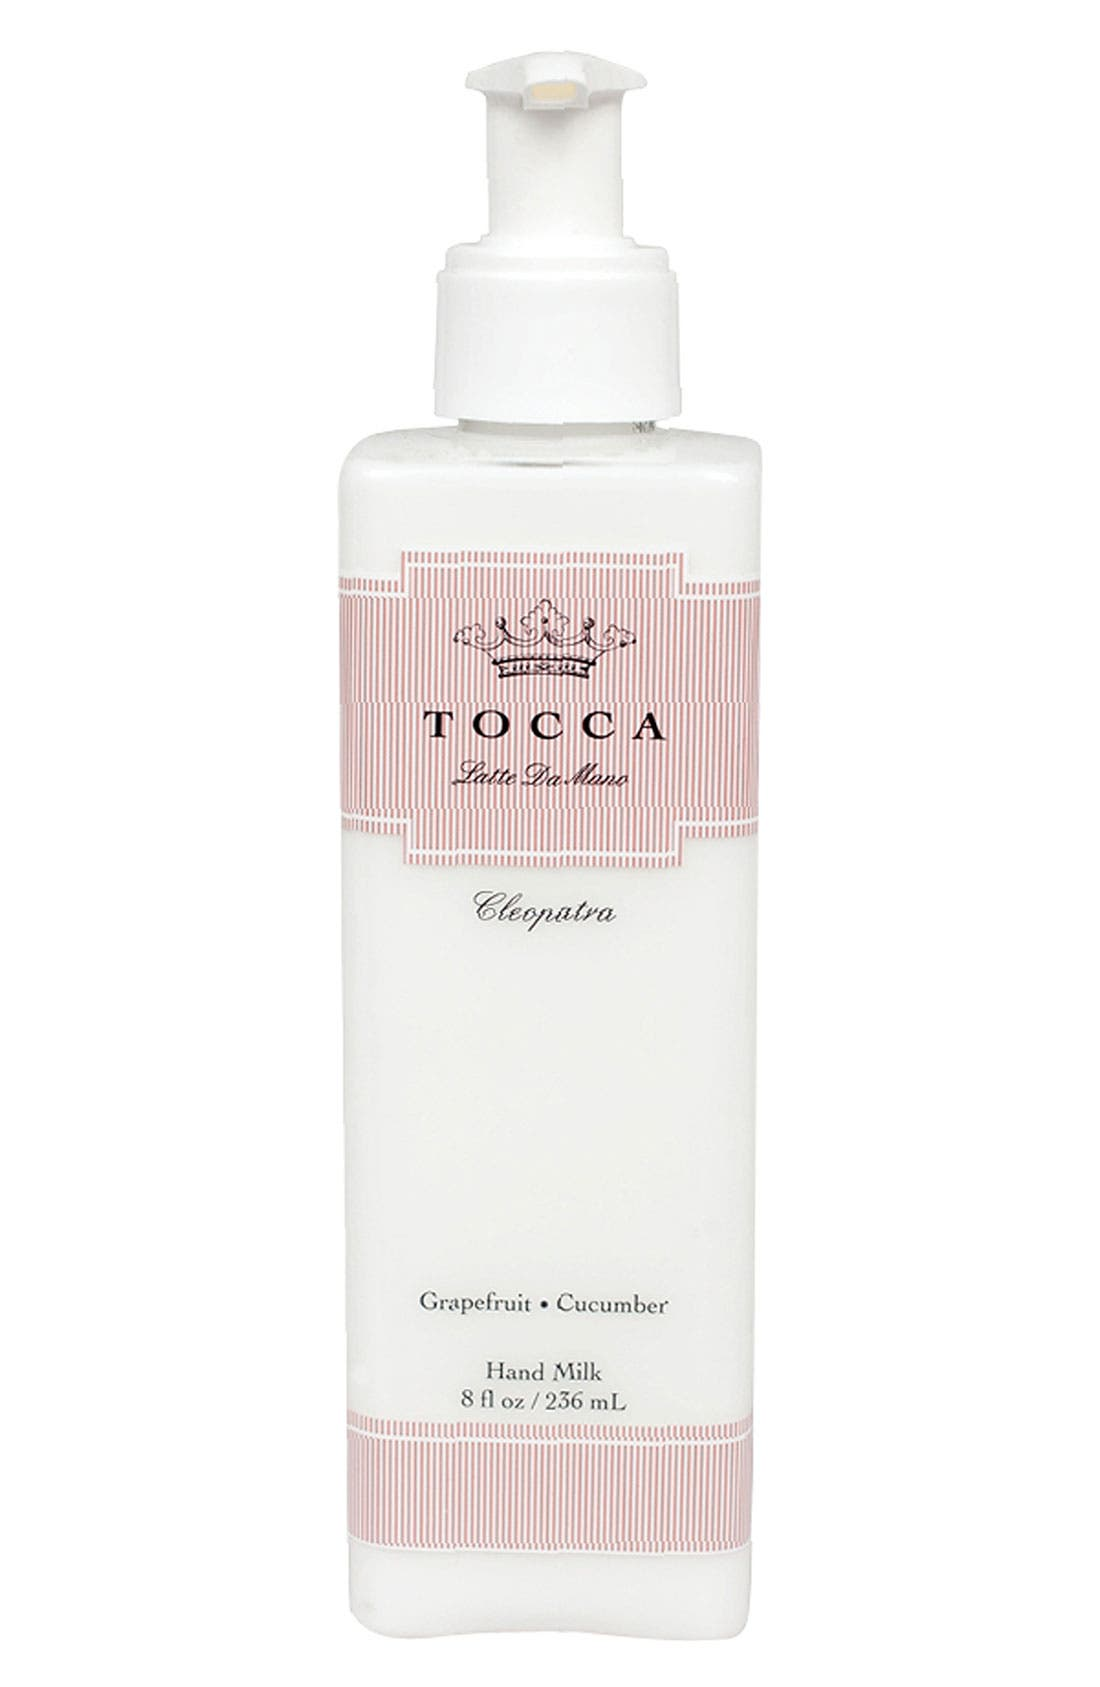 Alternate Image 1 Selected - TOCCA 'Cleopatra' Hand Milk